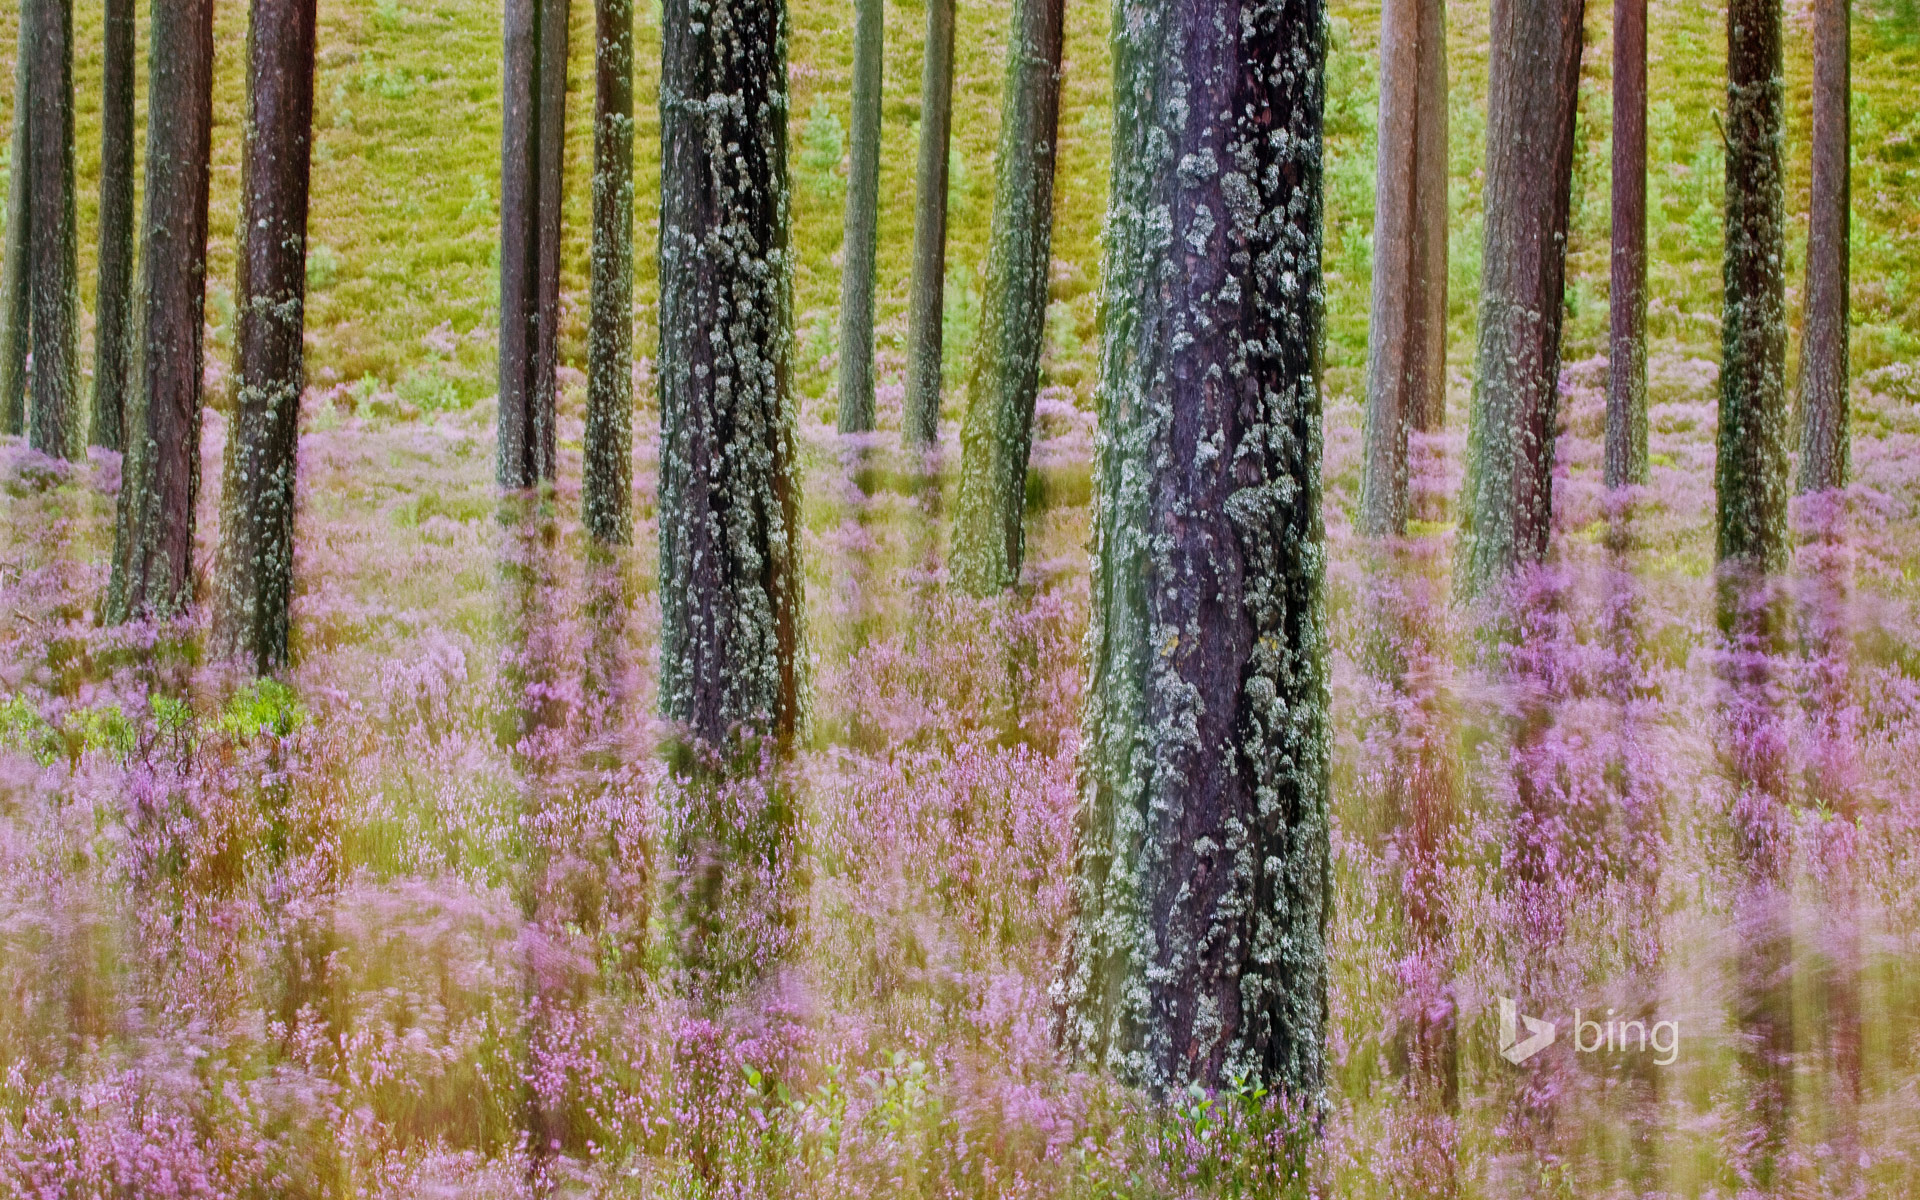 Heather growing in Cairngorms National Park, Scotland